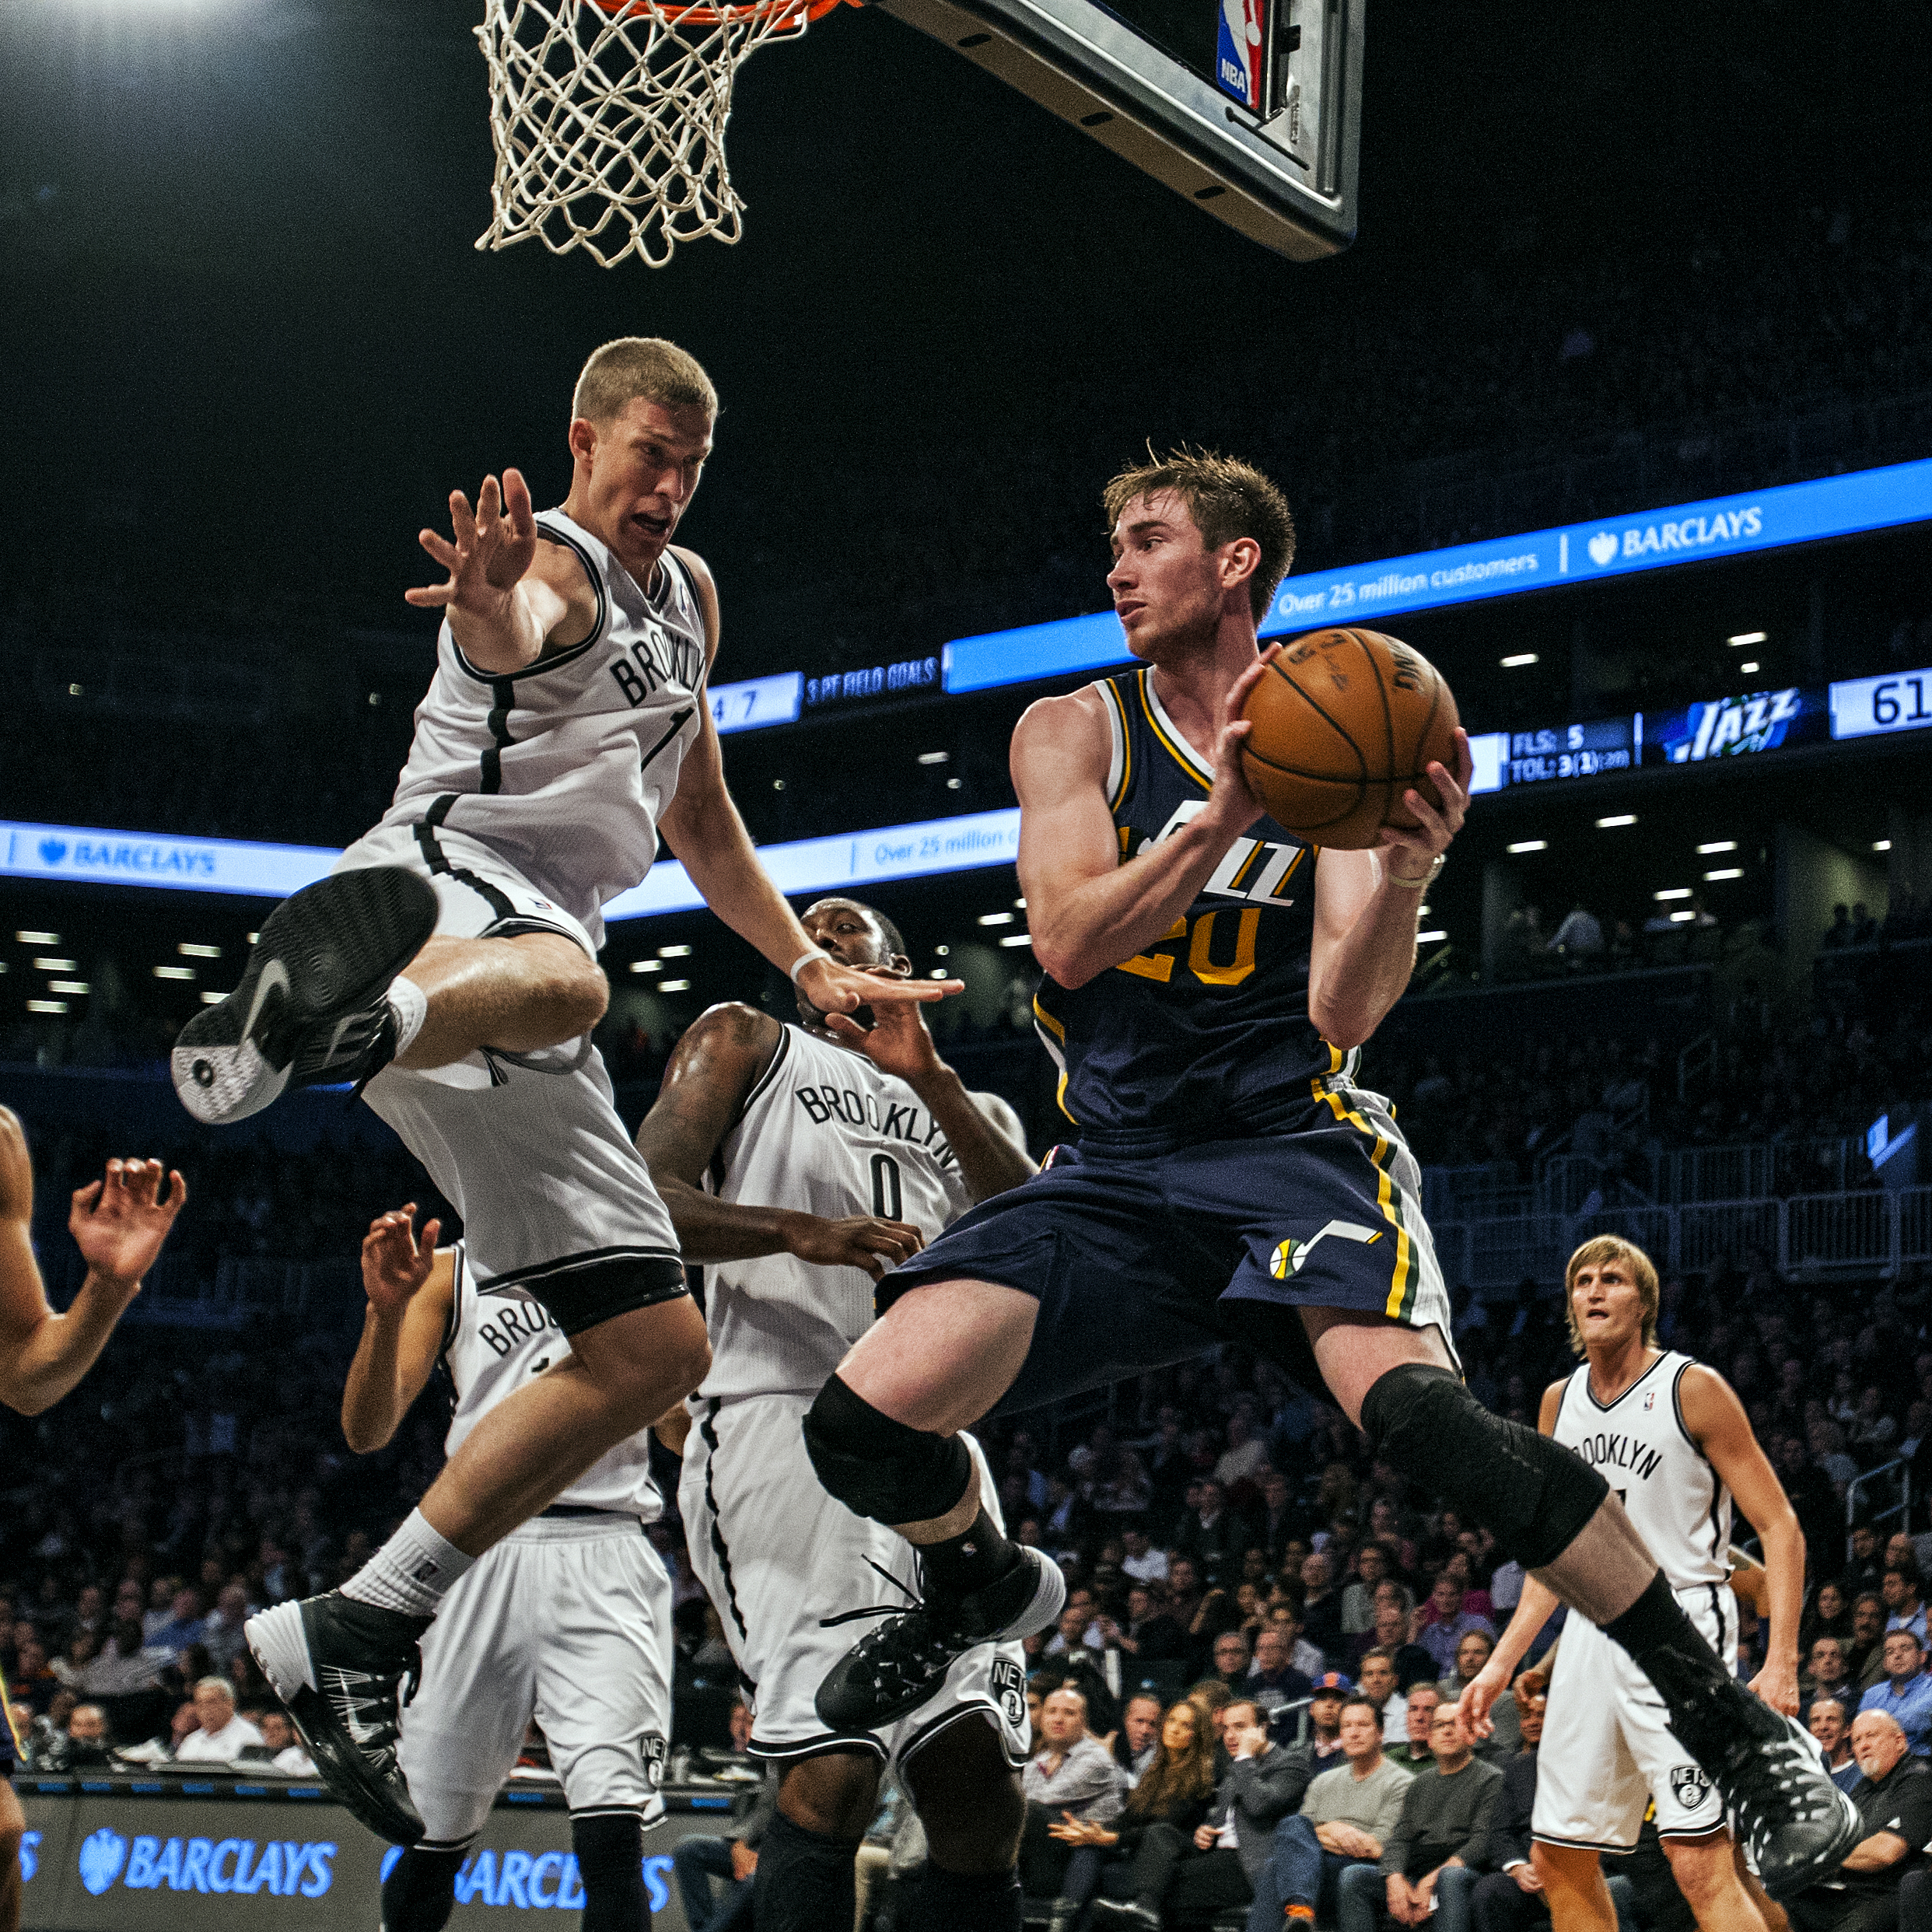 Utah Jazz shooting guard Gordon Hayward (20) inbounds a ball while being pressured by Brooklyn Nets power forward Mason Plumlee (1) during the NBA regular season match played between the teams on Nov. 5, 2013 at Barclays Center in Brooklyn, N.Y.